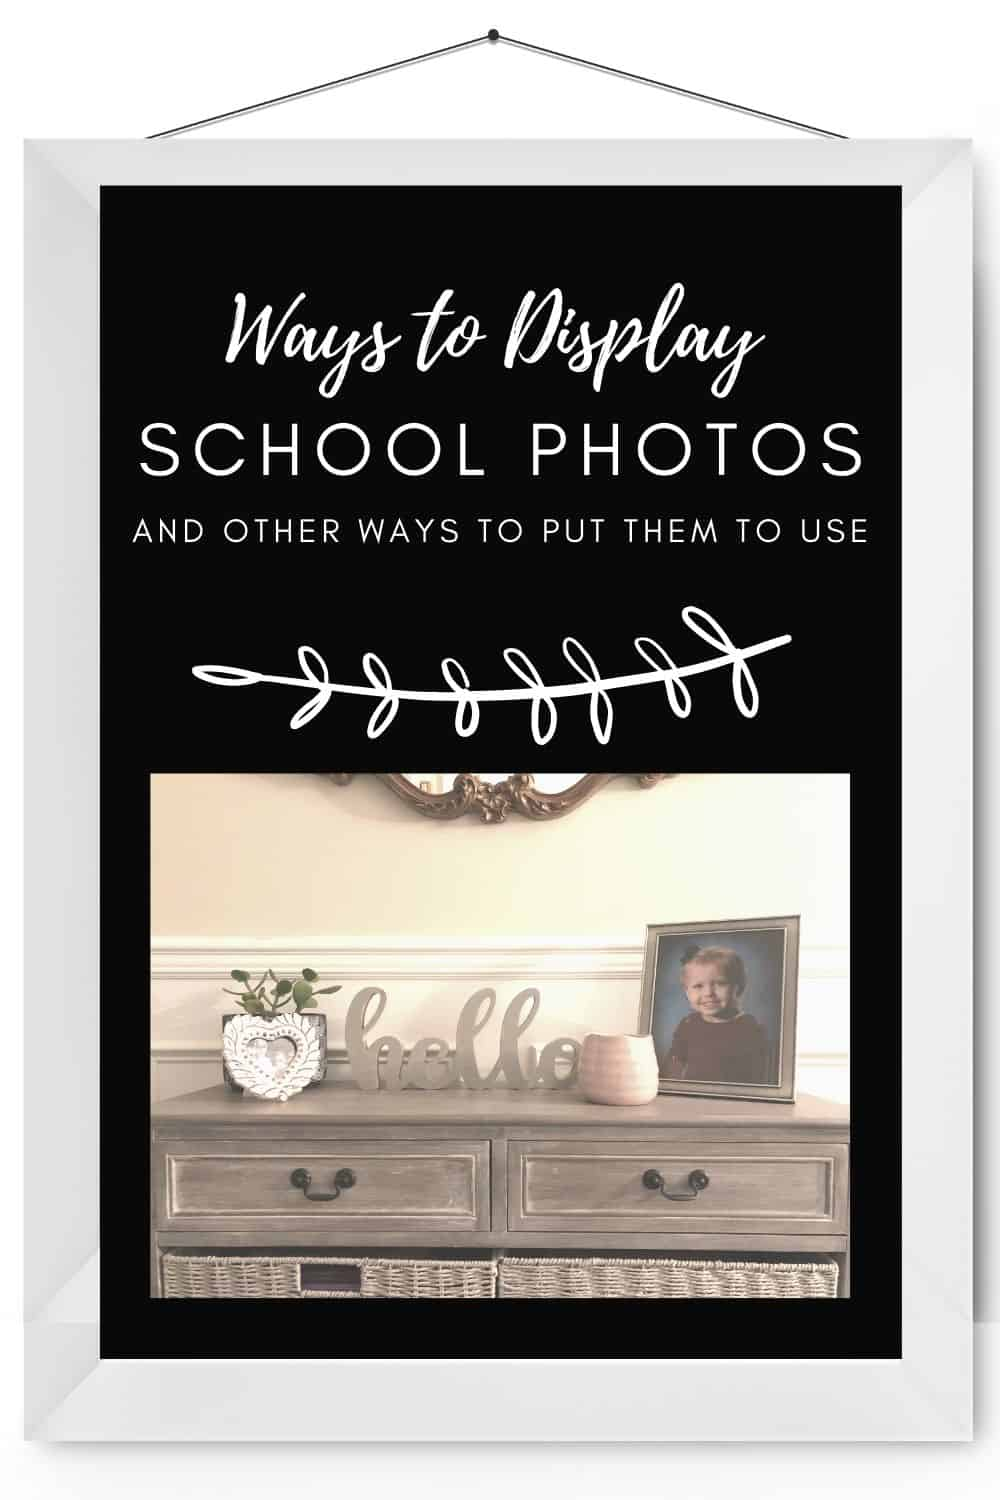 Put those school photos to good use! Here are some creative and fun ways to display your child's school photos over the years!